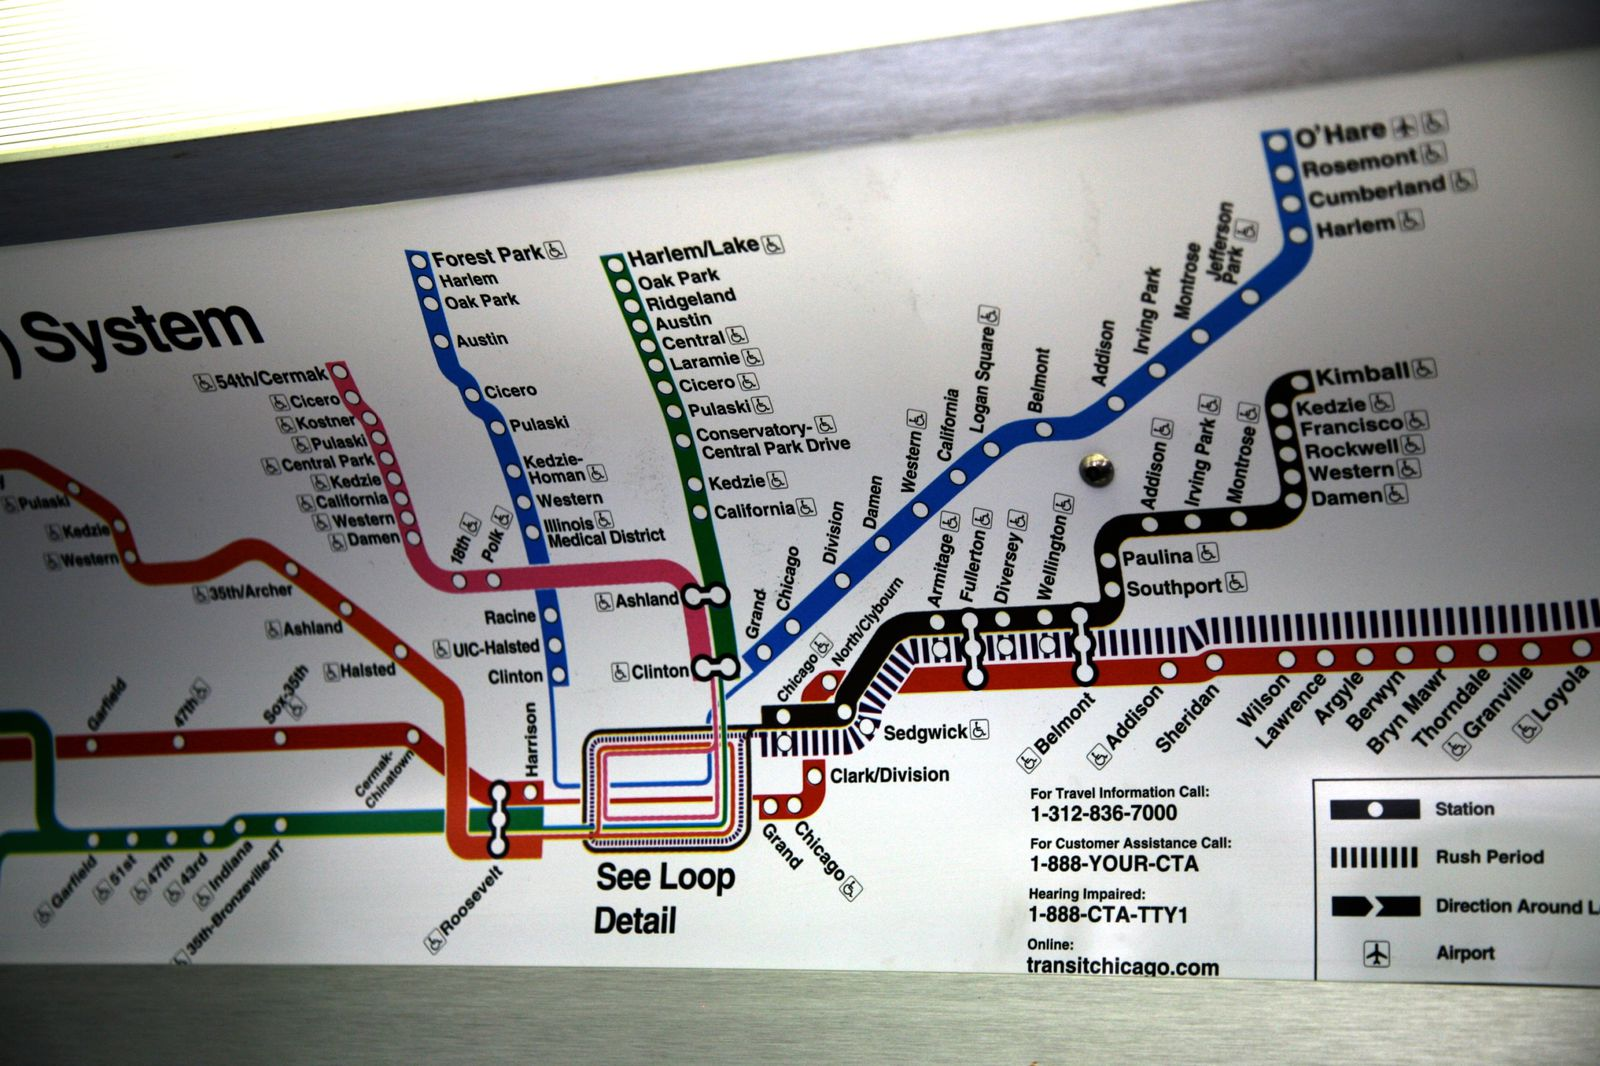 Blue Line Chicago Map Pictures To Pin On Pinterest  PinsDaddy